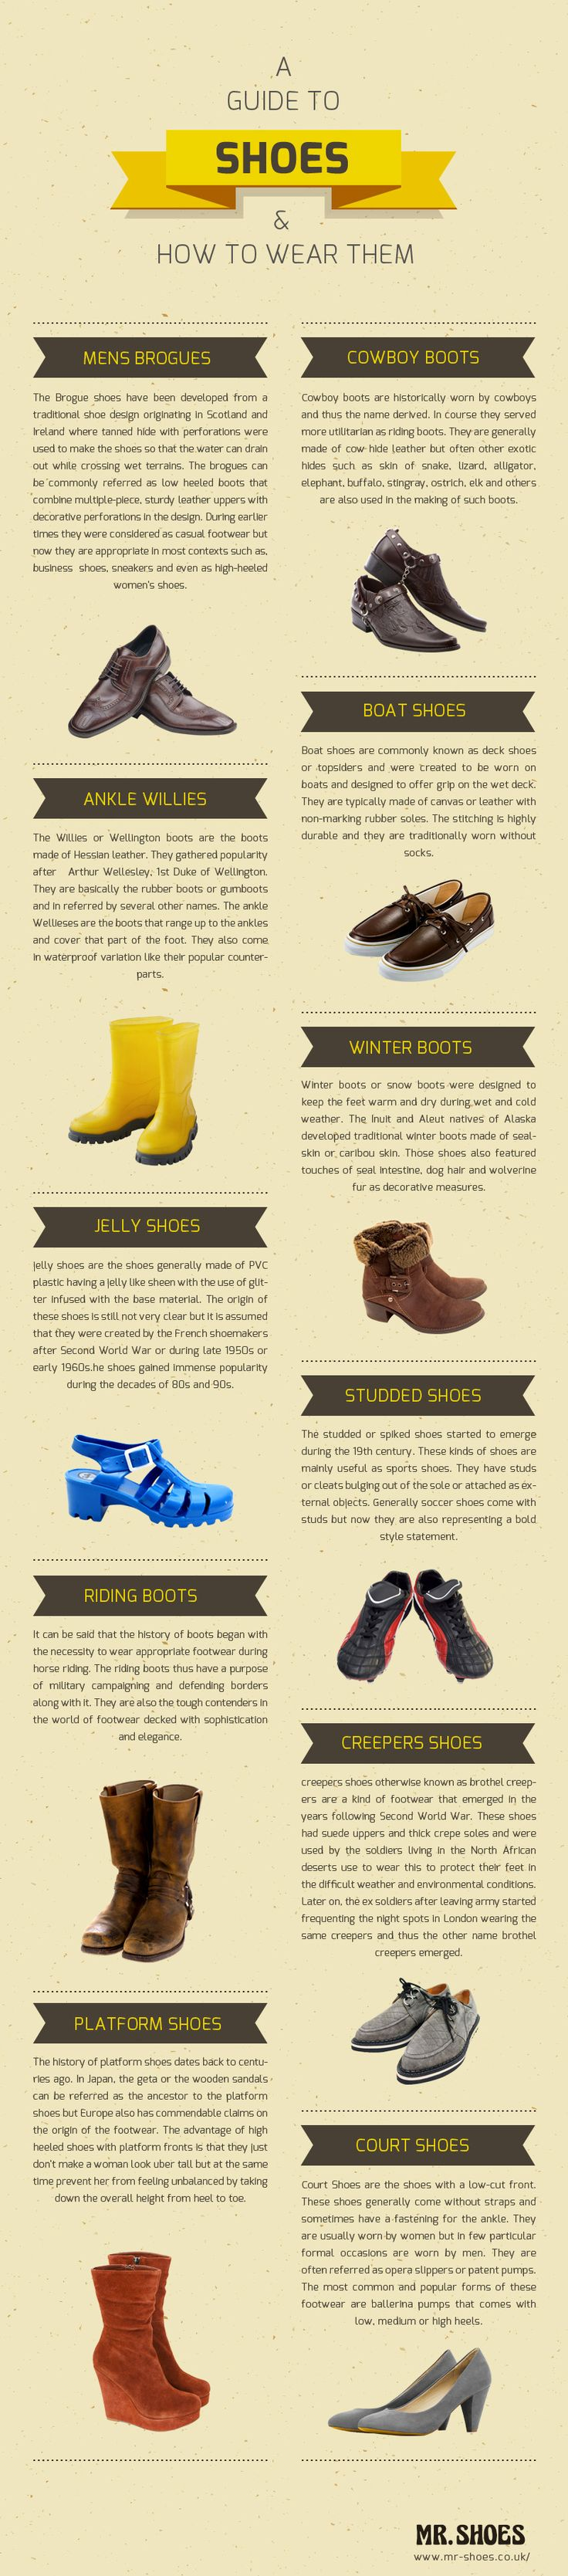 A guide to shoes and how to wear them.  http://www.mr-shoes.co.uk/: Http Www Mr Shoes Co Uk, Fashion Clothing, Guide To, Shoes Guide, Infographic, How To, Wear, Info Graph